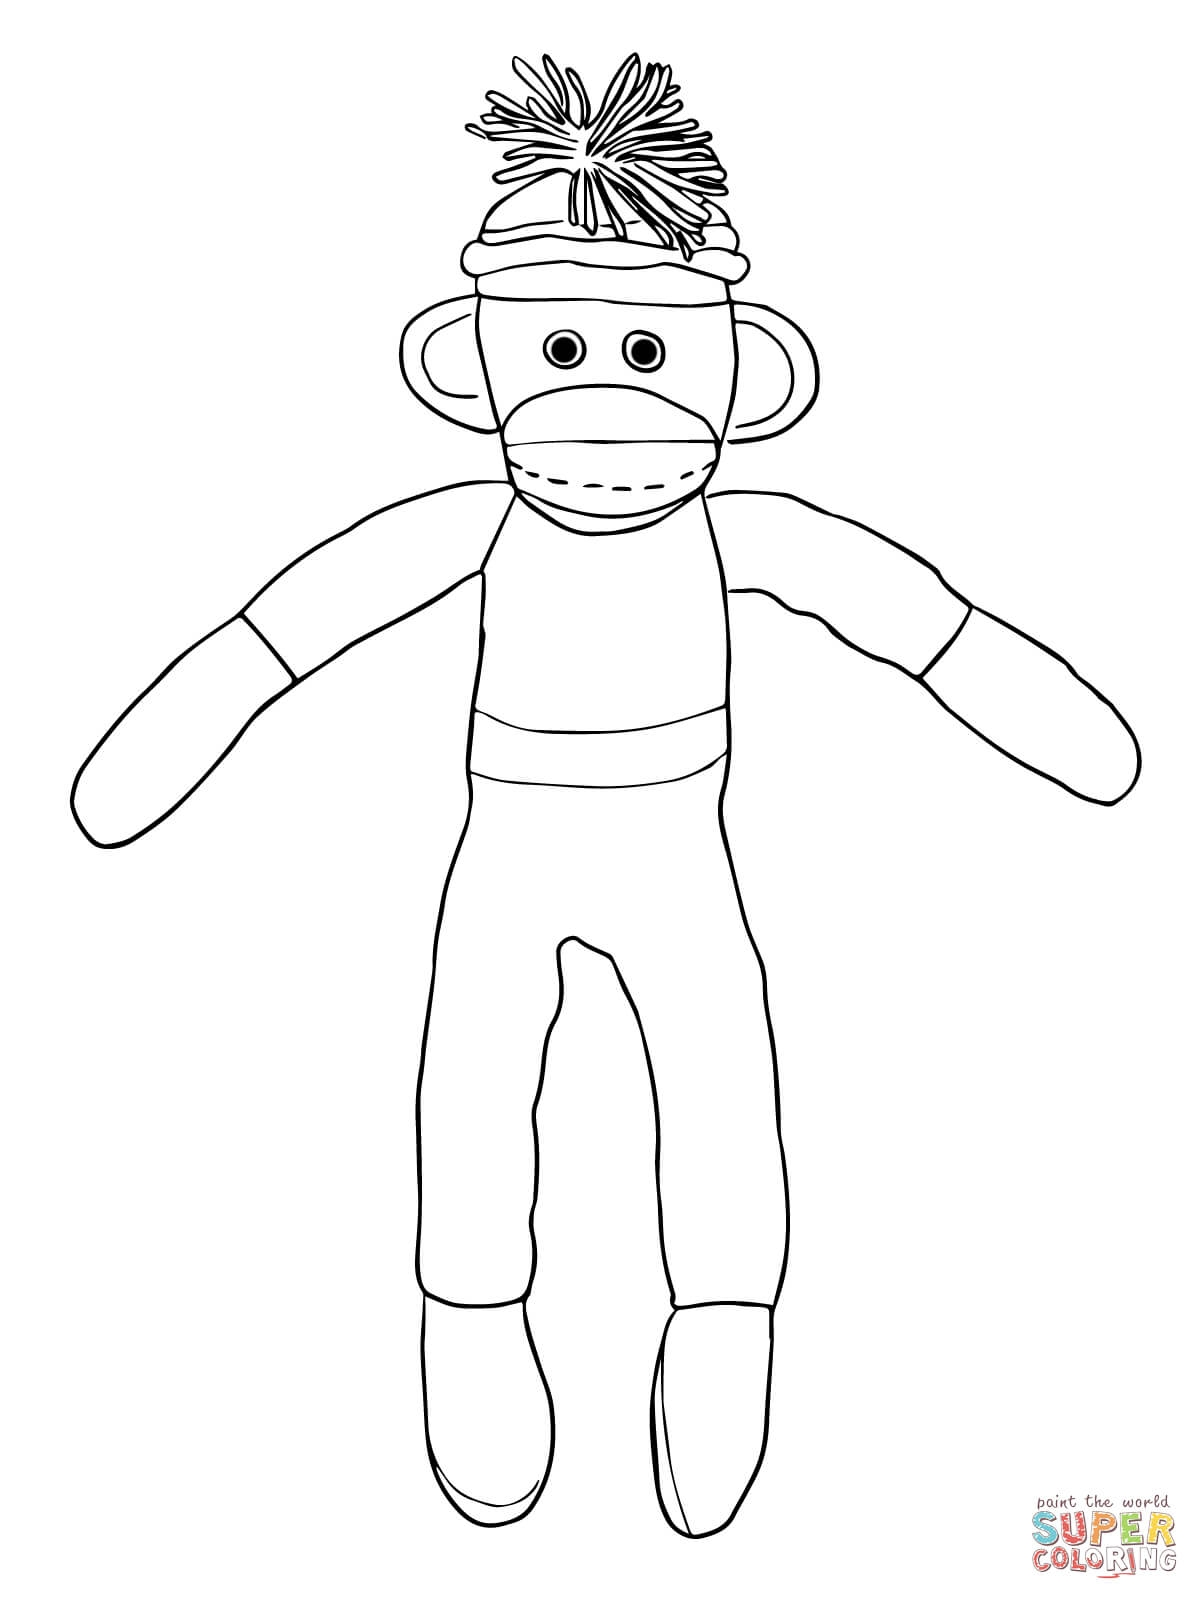 socks coloring page - sock monkey coloring pages